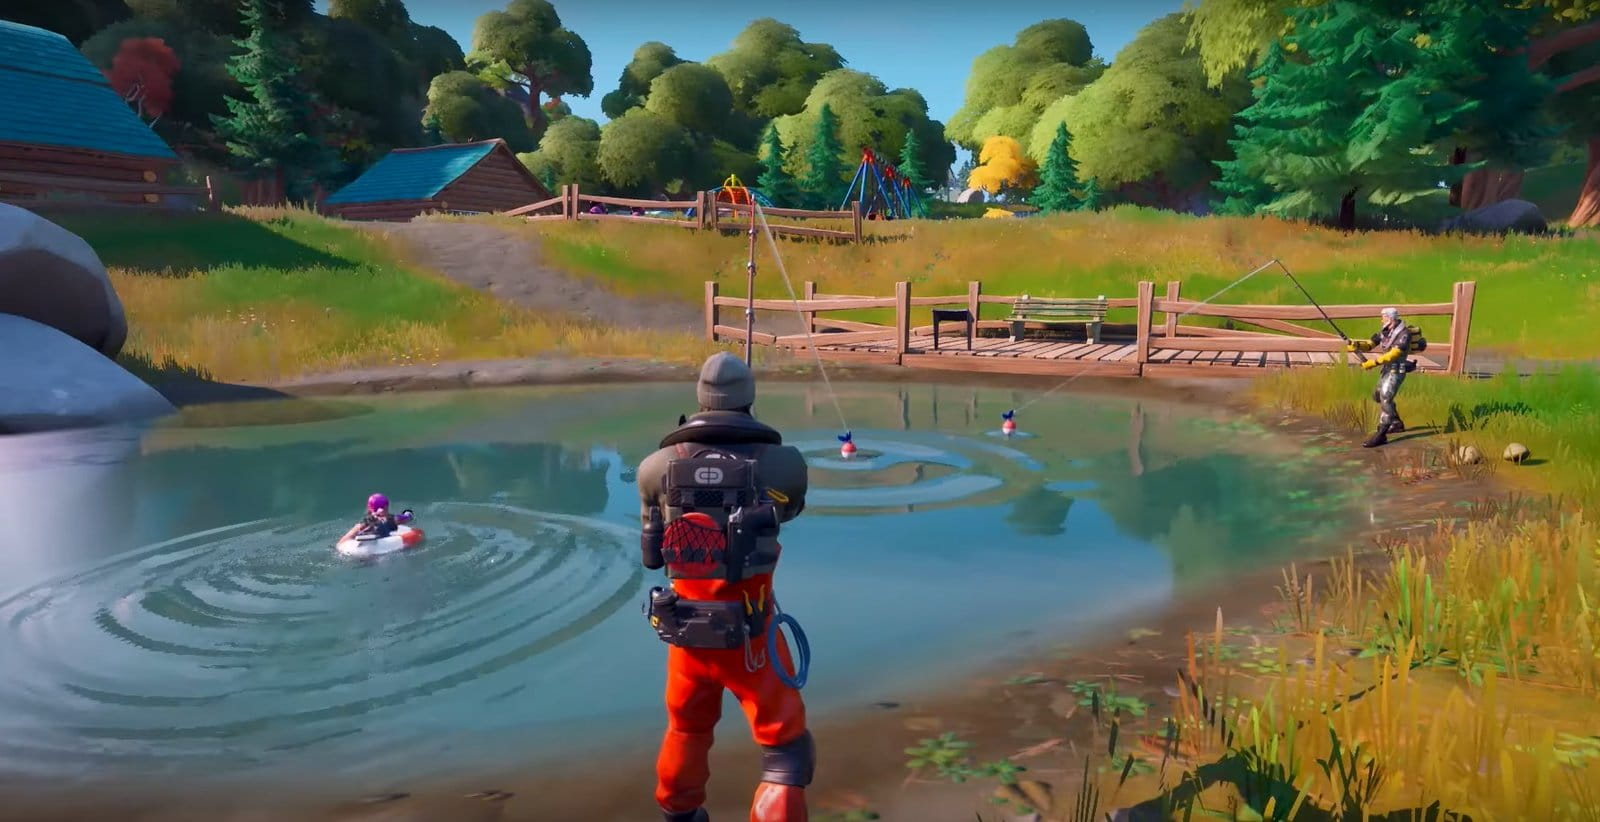 Leaked Fortnite Chapter 2 Trailer Showcases A New Map And